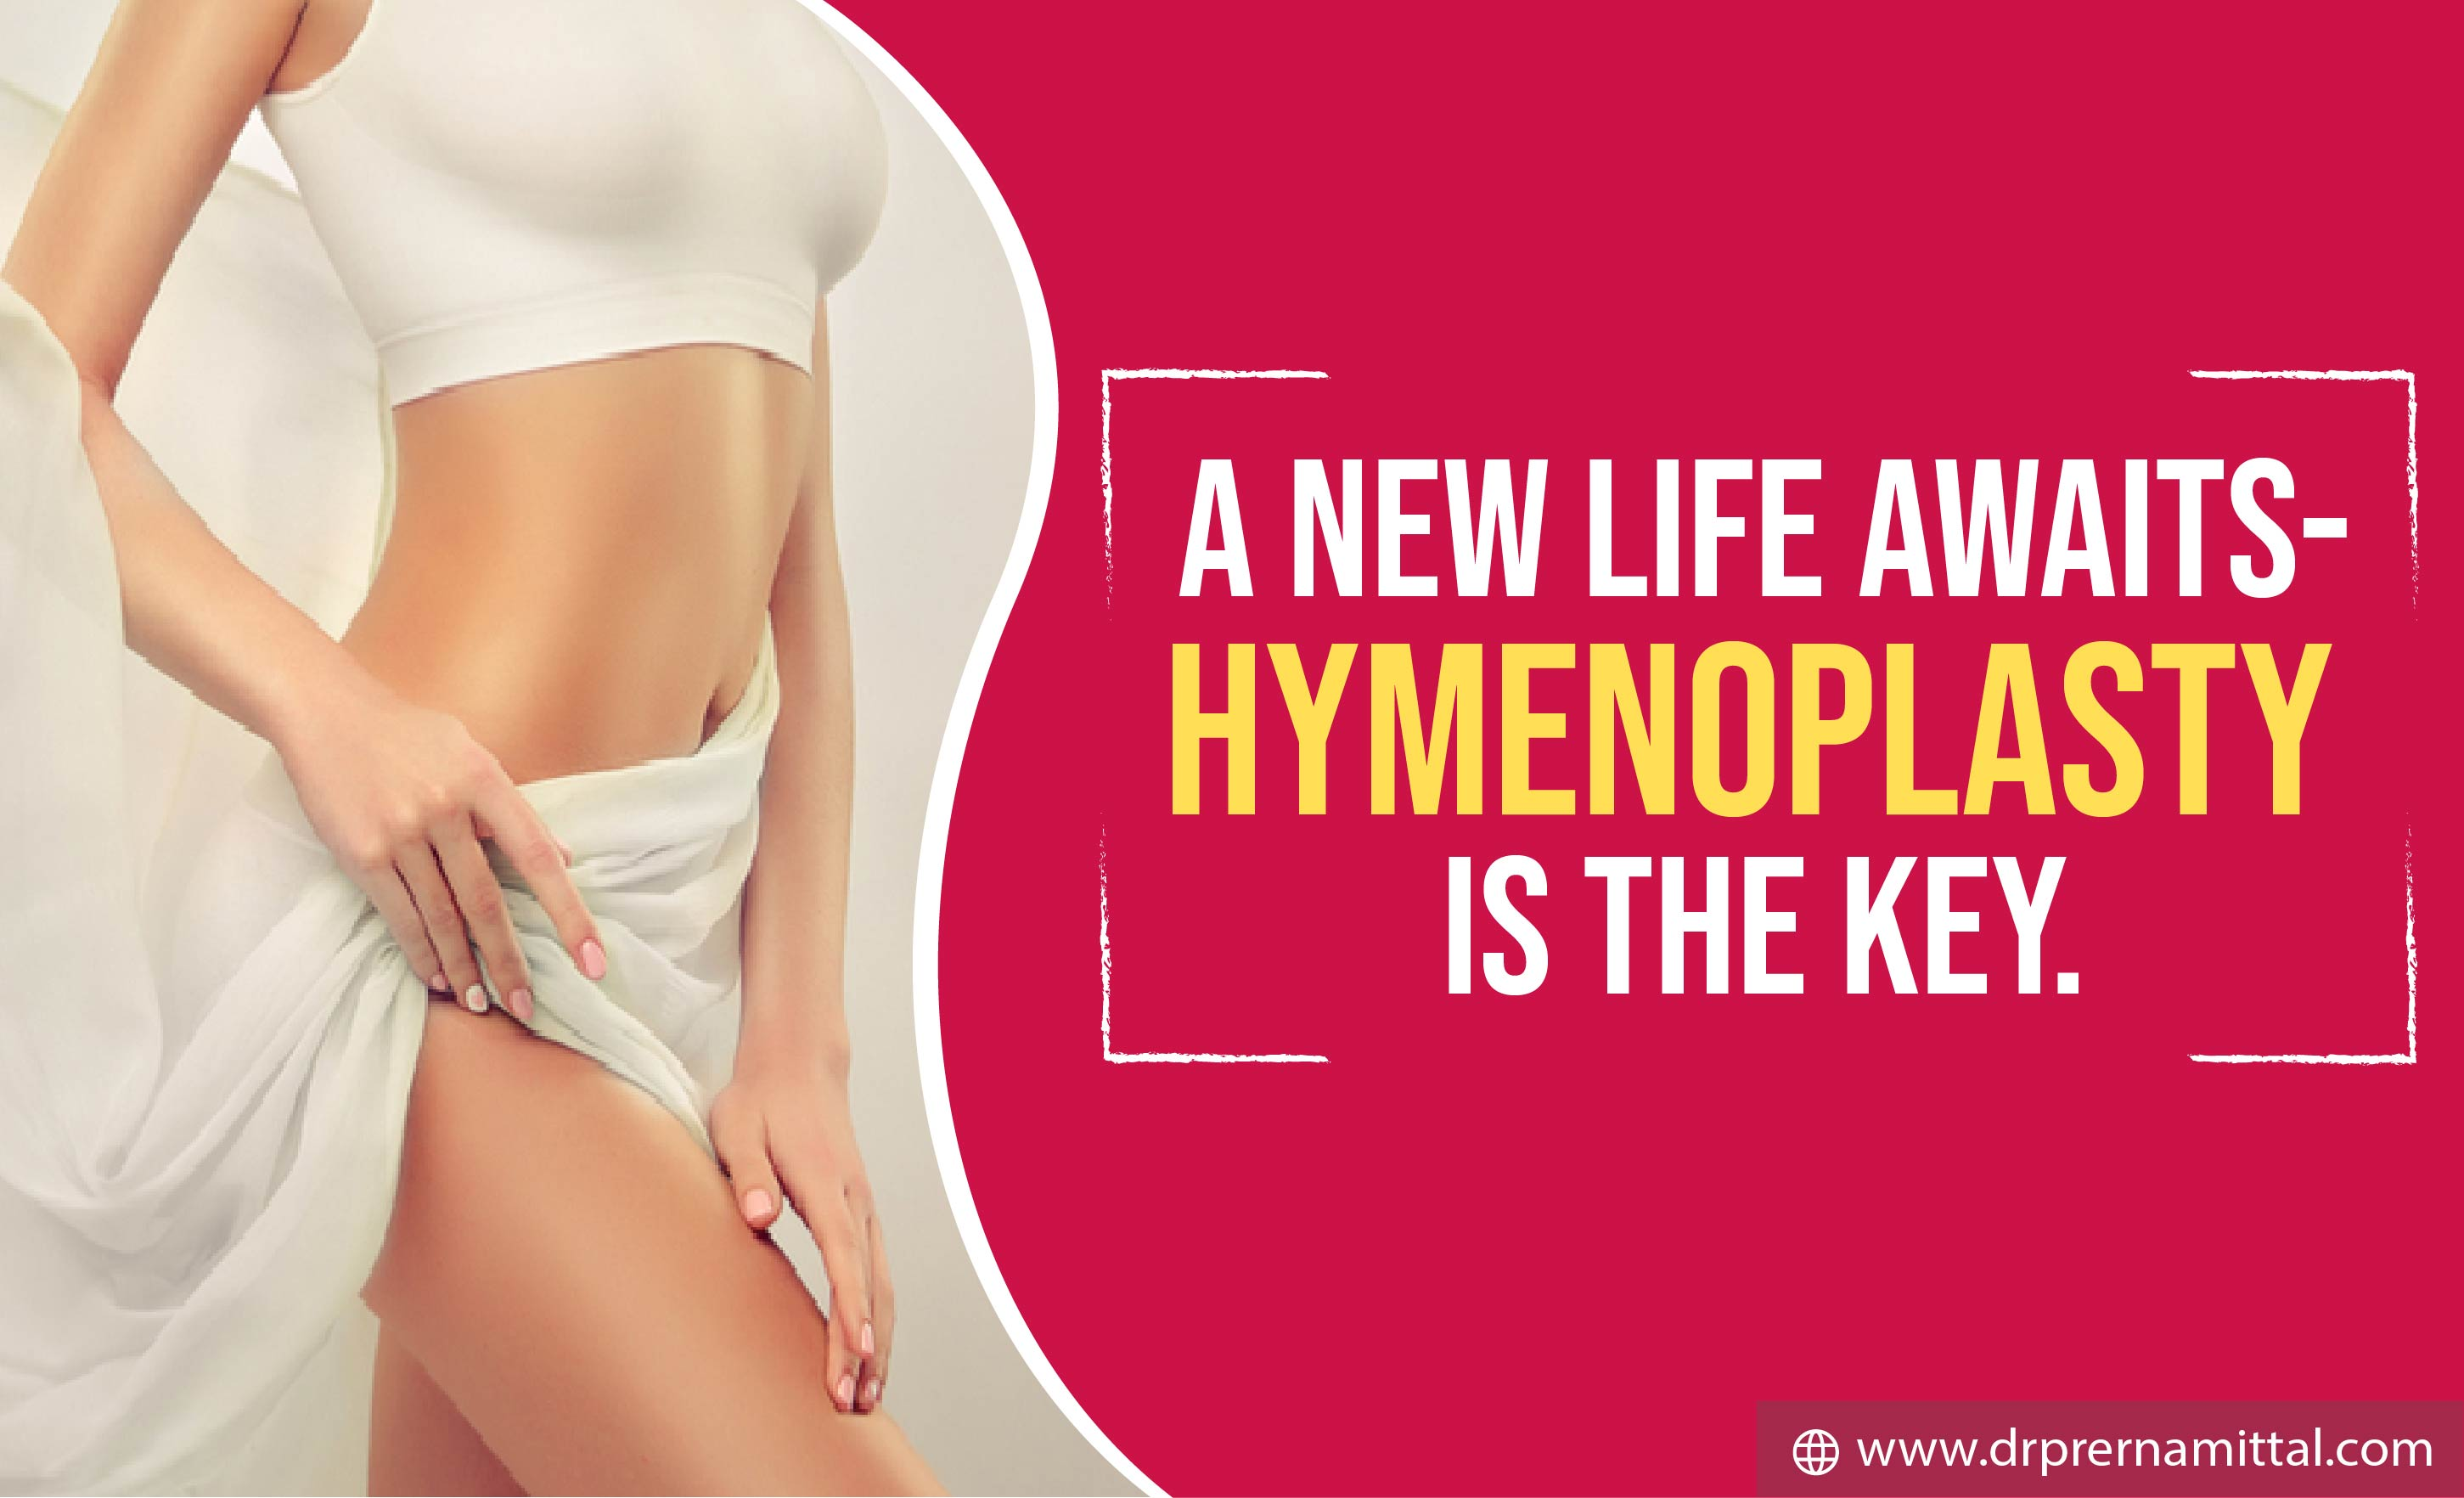 A New Life Awaits-Hymenoplasty is the Key